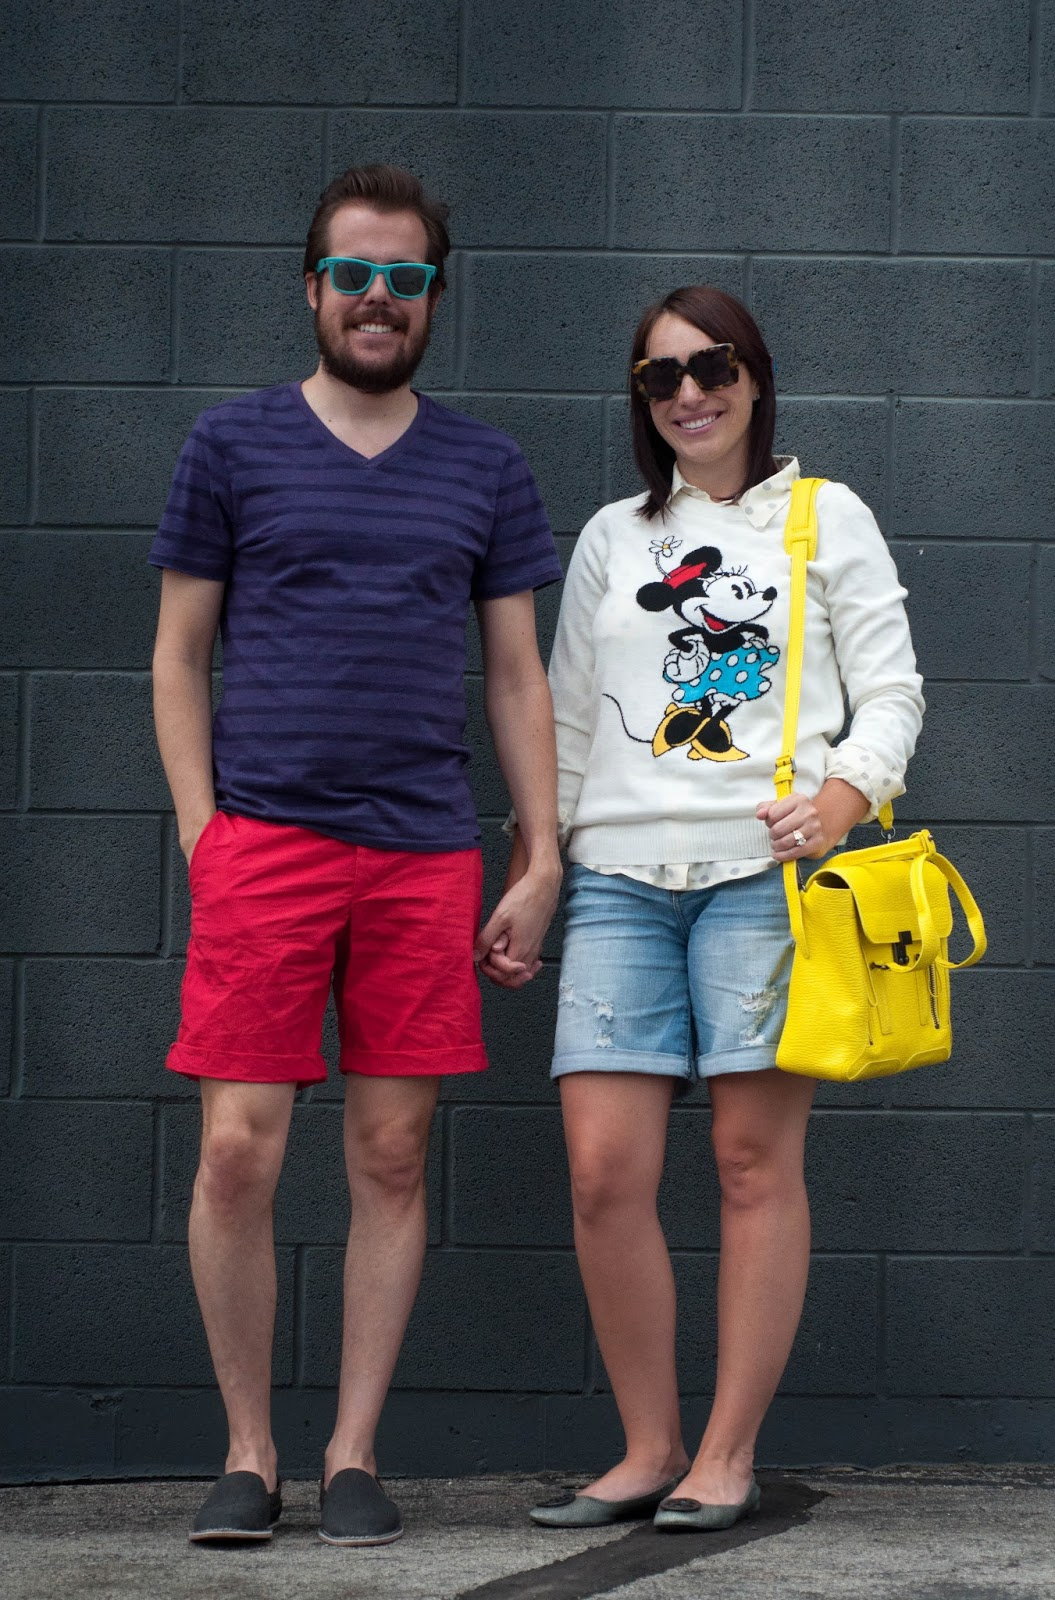 ootd, couples fashion, couples style, fashion blog, style blog, 3.1 phillip lim, minnie mouse pullover